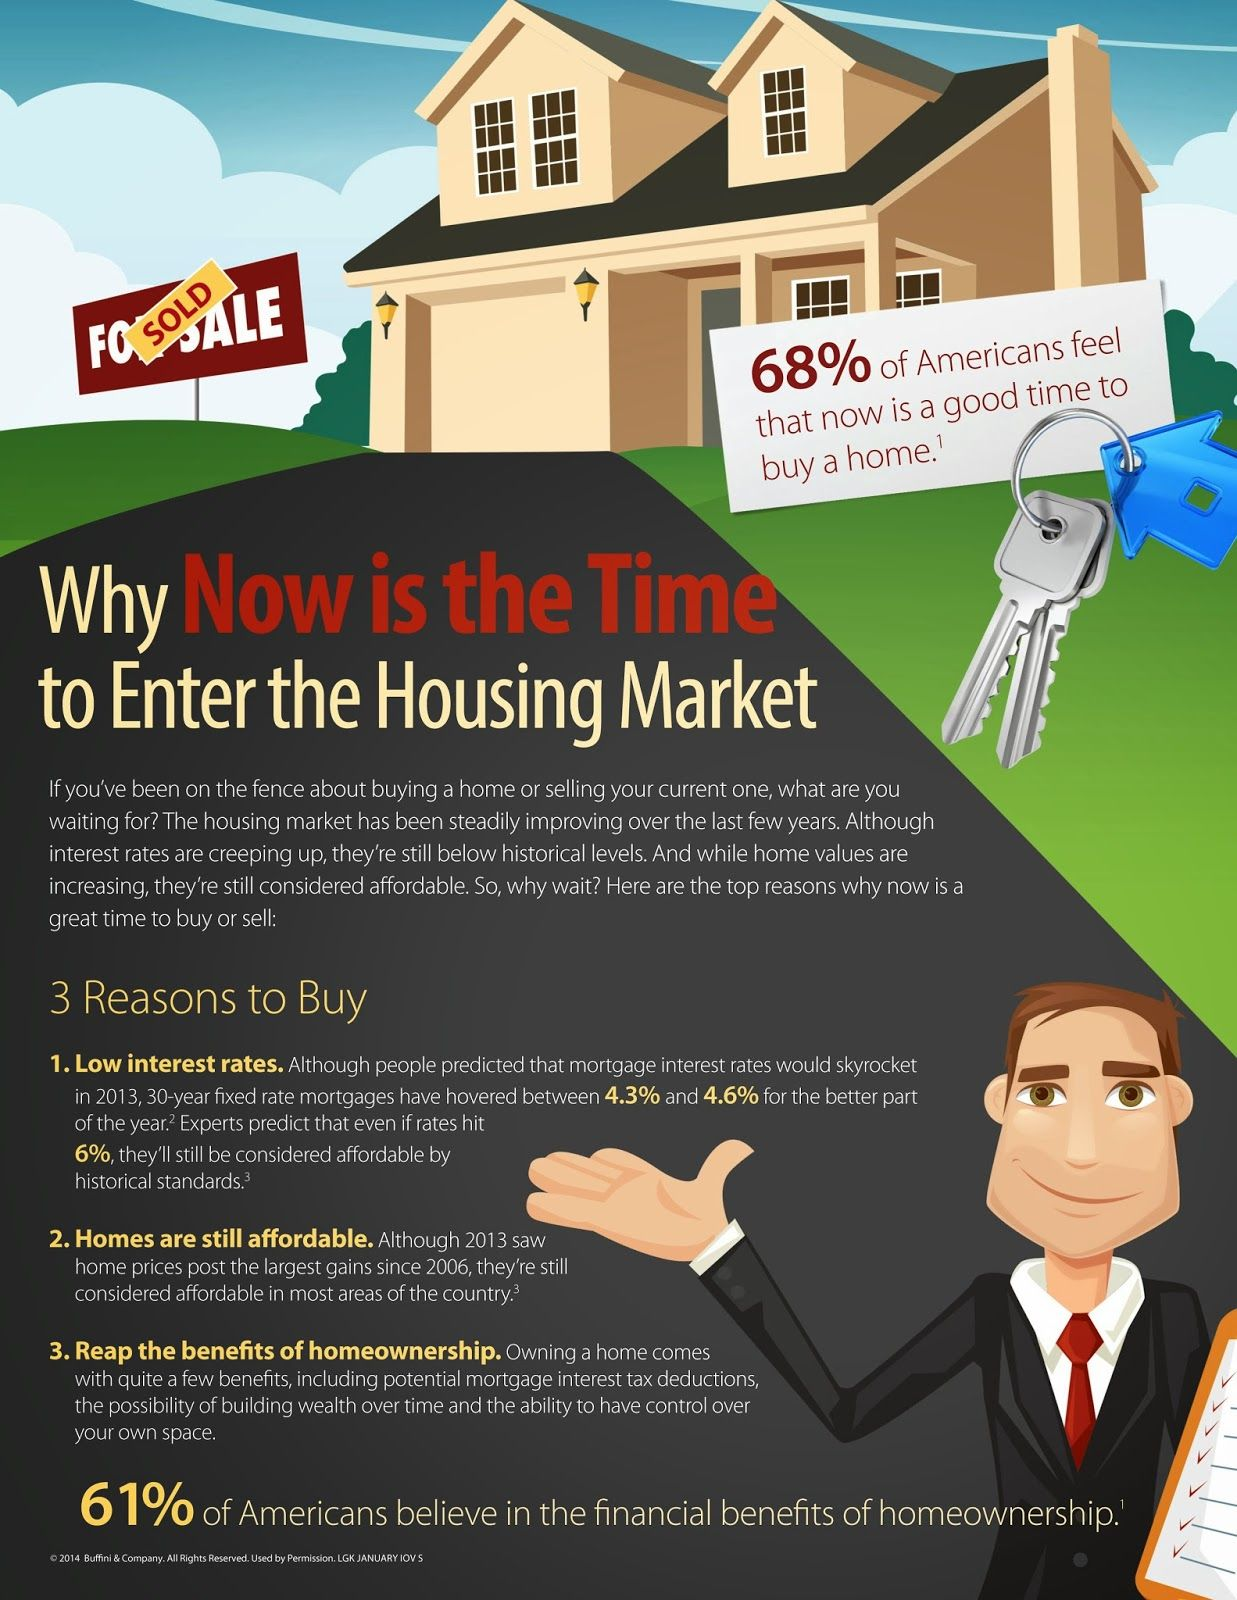 3 Reasons To Buy 3 Reasons To Sell Buying Investment Property Things To Sell Property Marketing